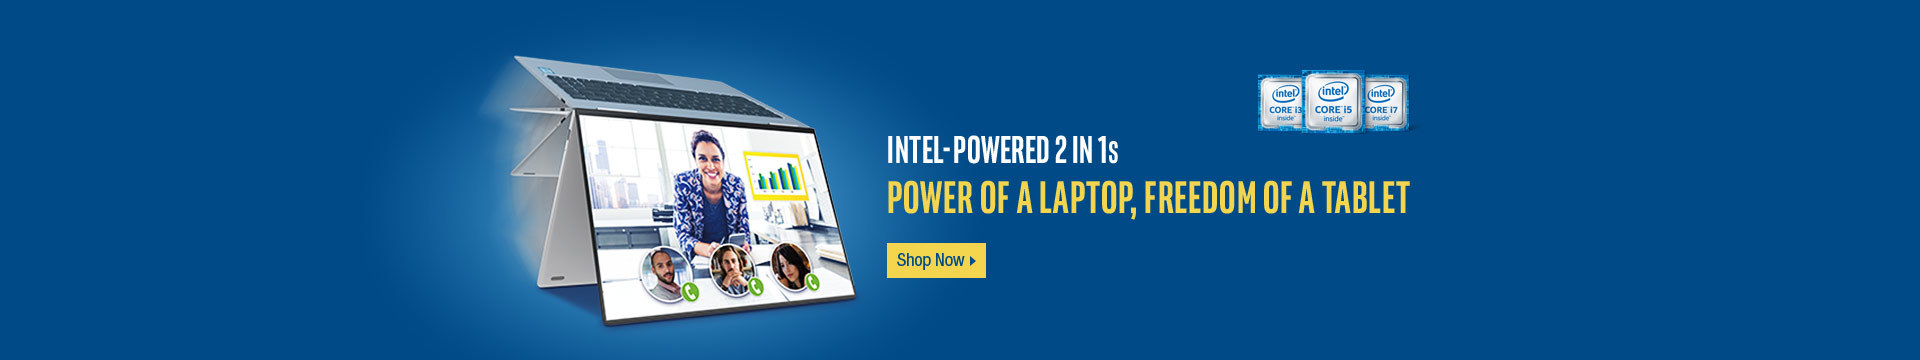 INTEL-POWERED 2 IN 1s